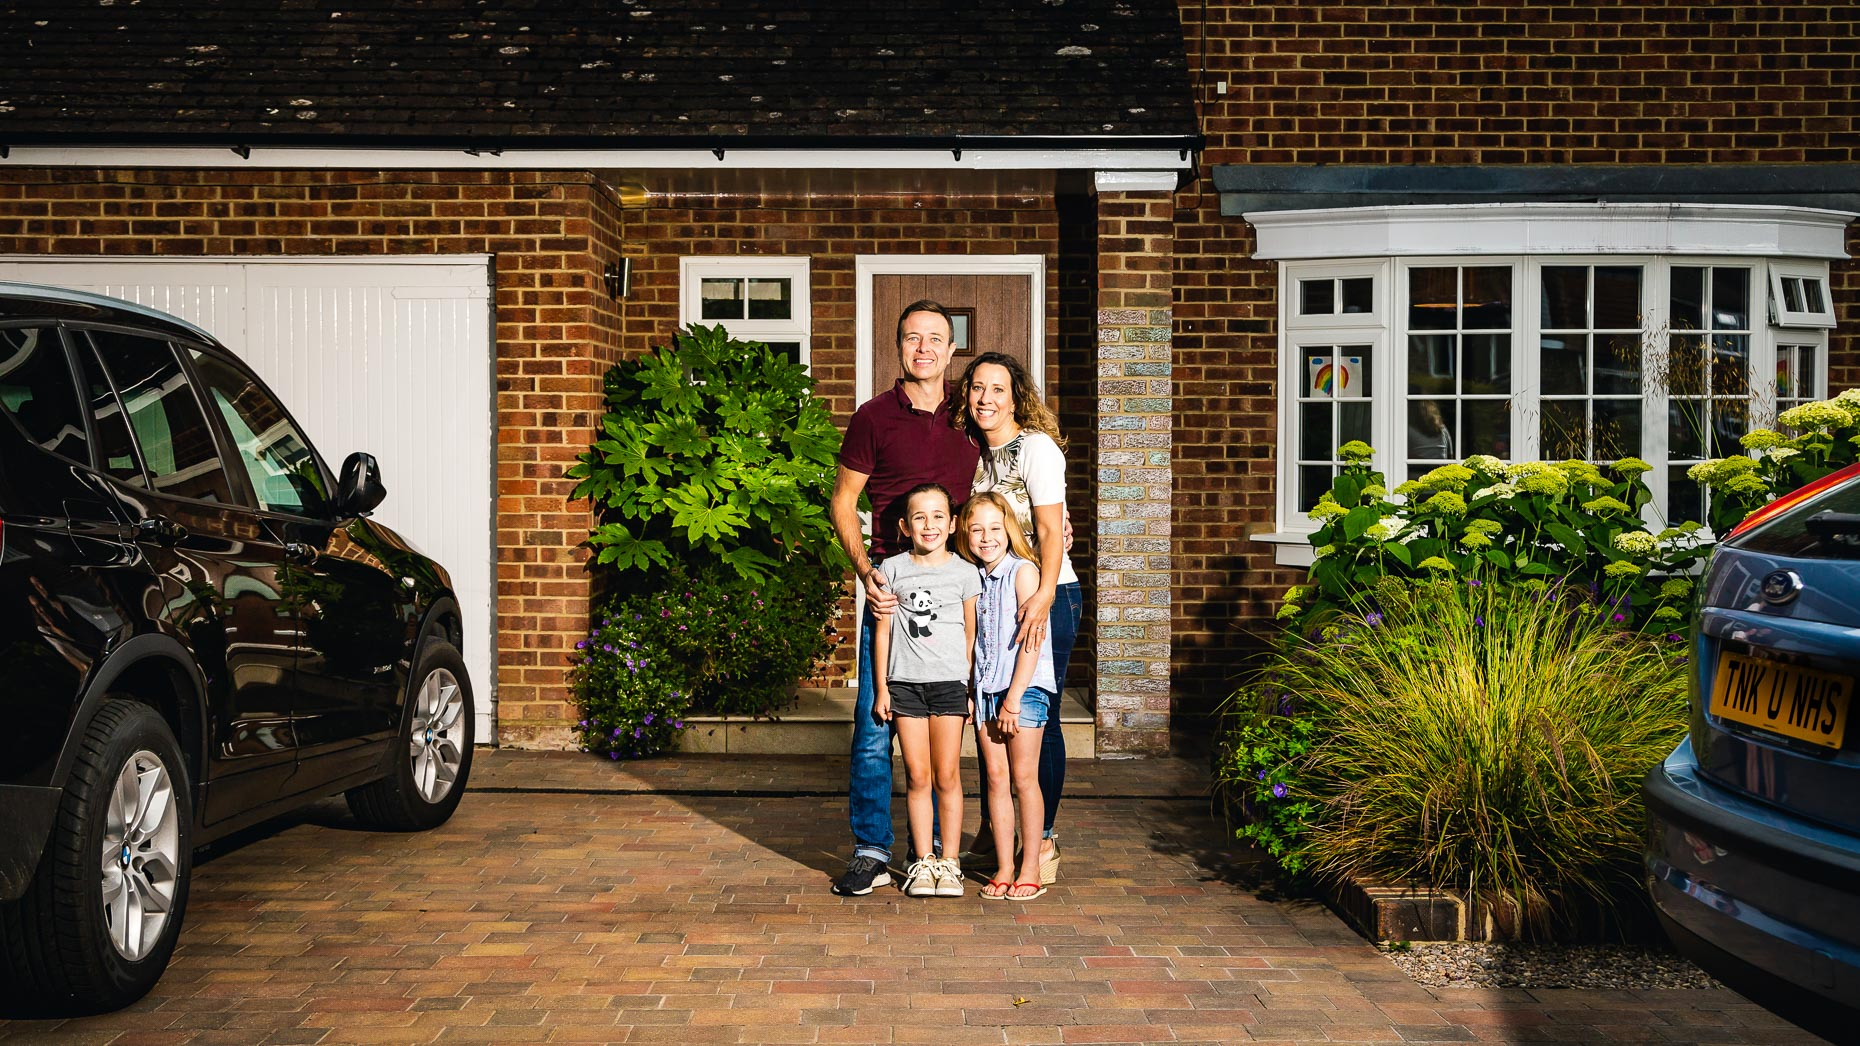 Ashtead Doorstep Portraits 50